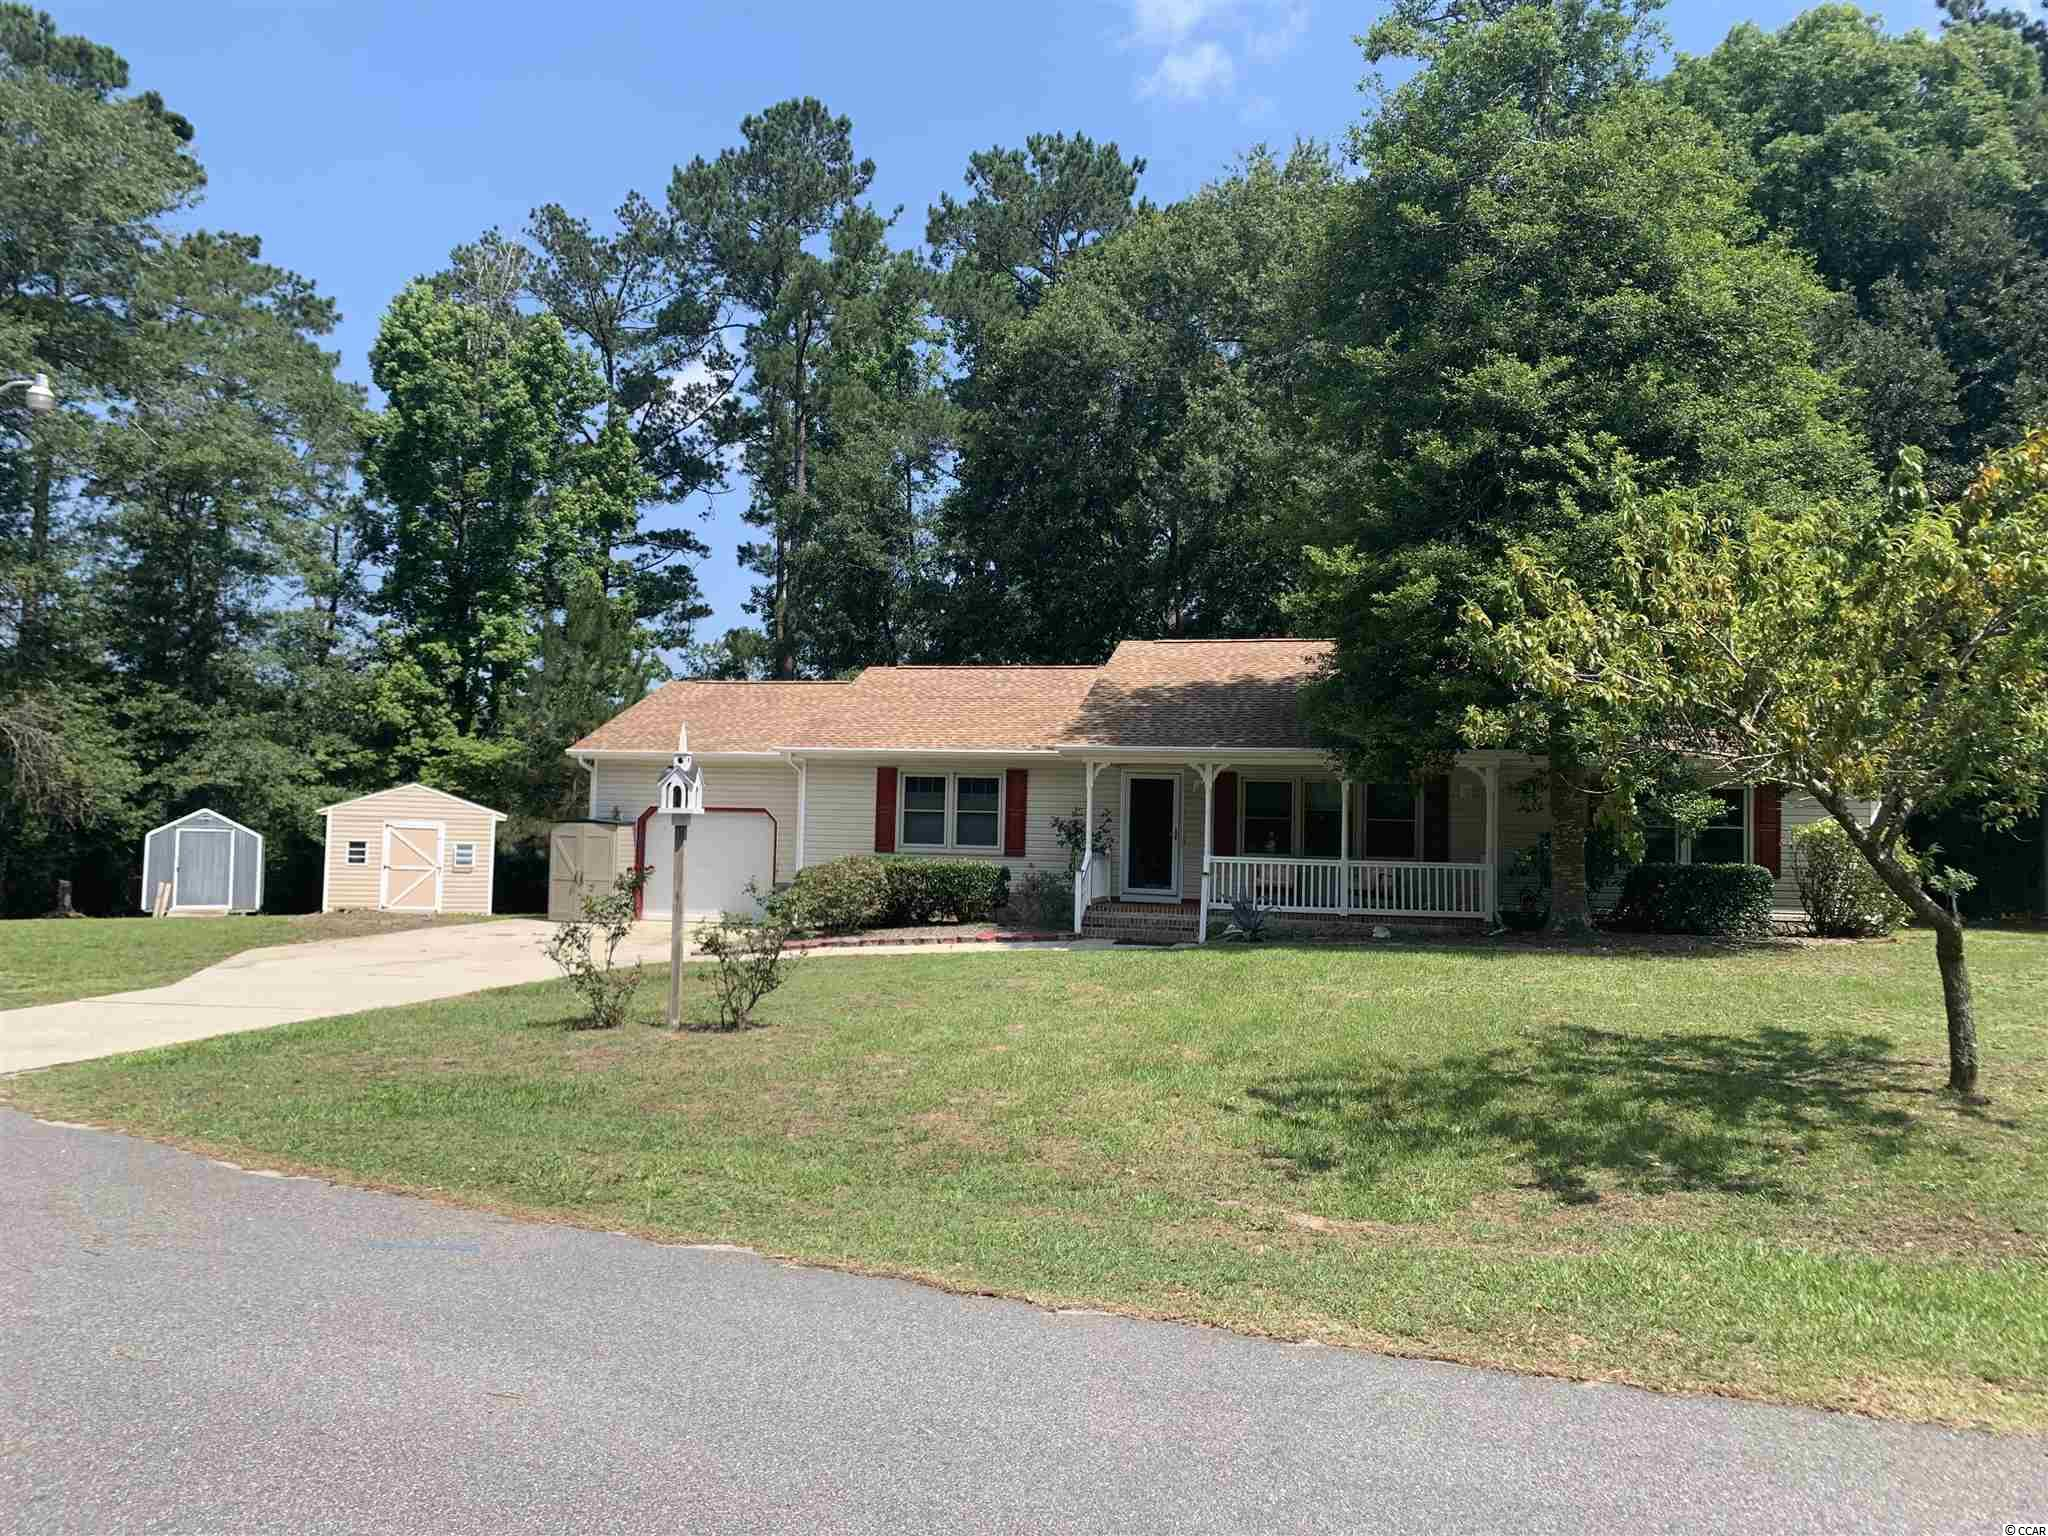 Beautiful home in Linda Lakes Subdivision with no HOA .  Very quite location on .78 ac.  Three bedrooms, two baths, one car garage with two detached storage sheds.  Plenty of parking for family and friends.